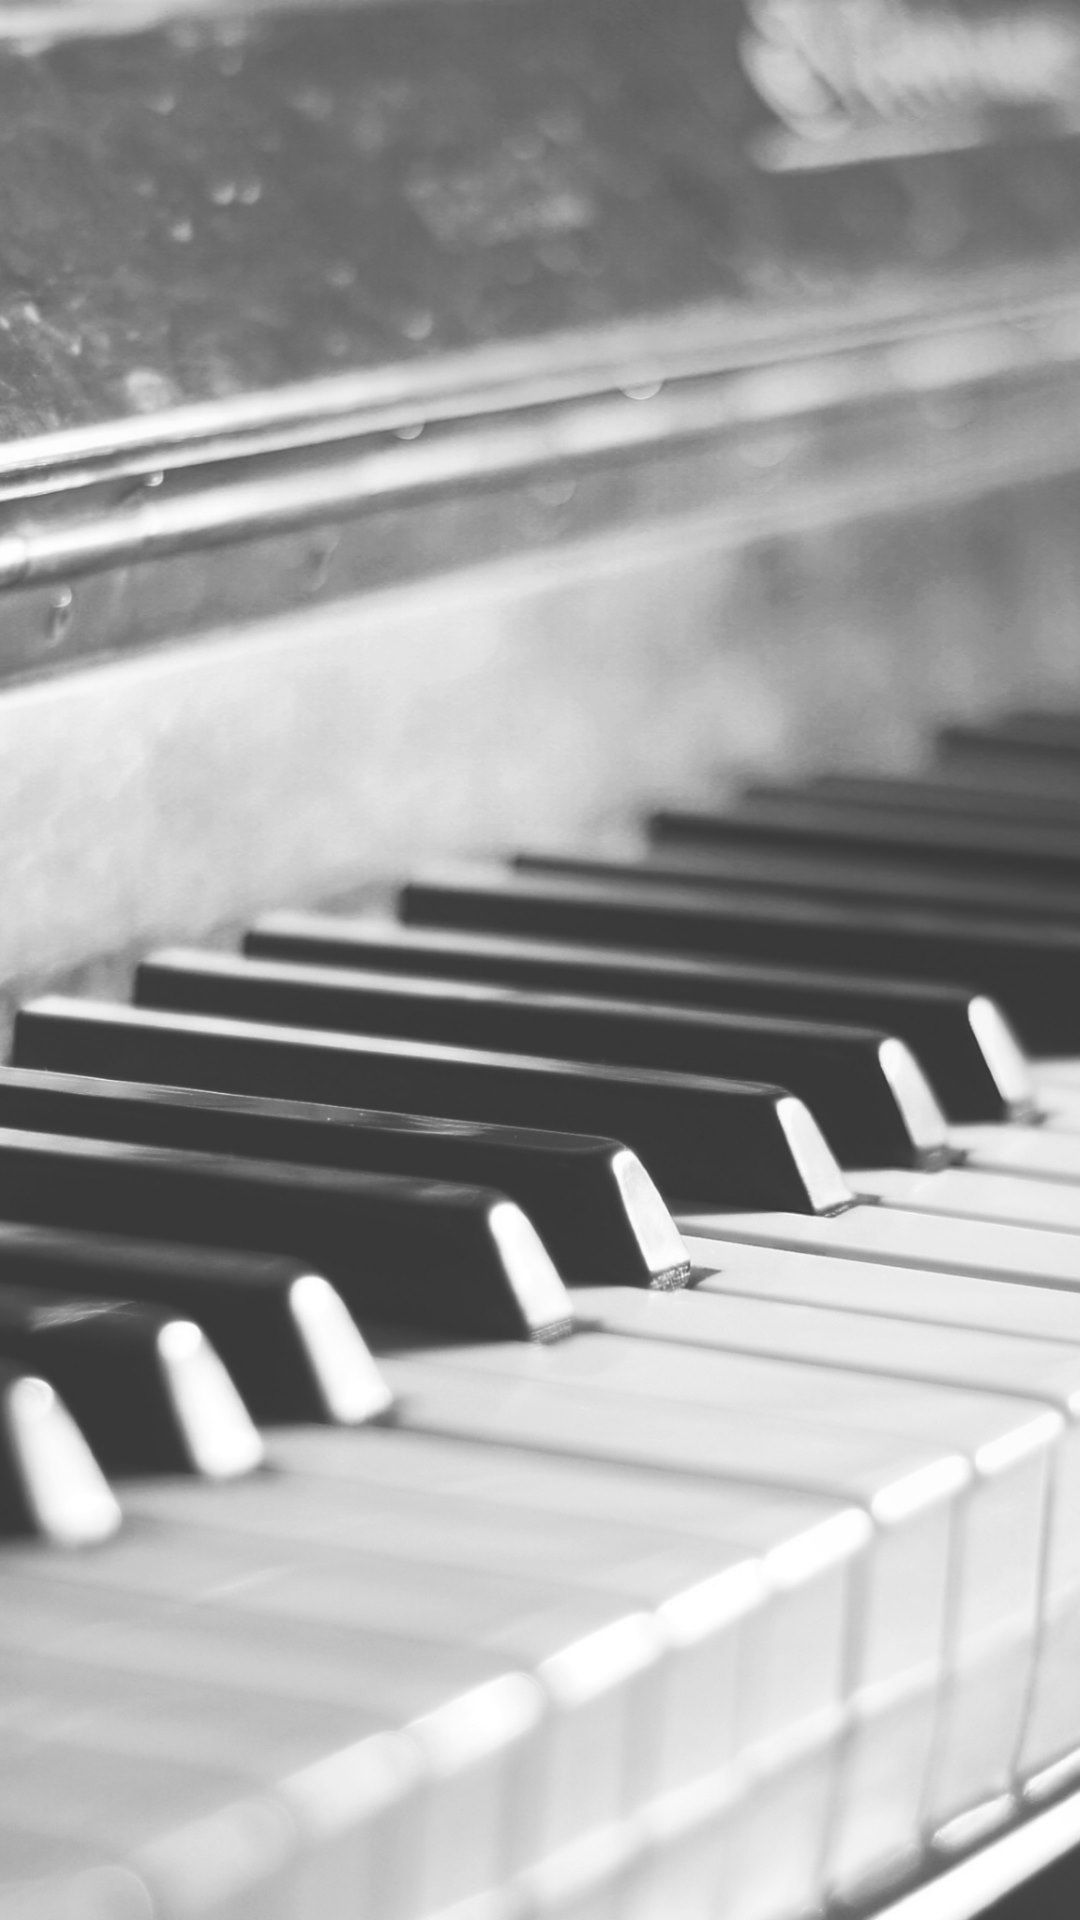 Vintage Pianos Wallpapers Hd Wallpapers Music Wallpaper Piano Iphone Wallpaper Music